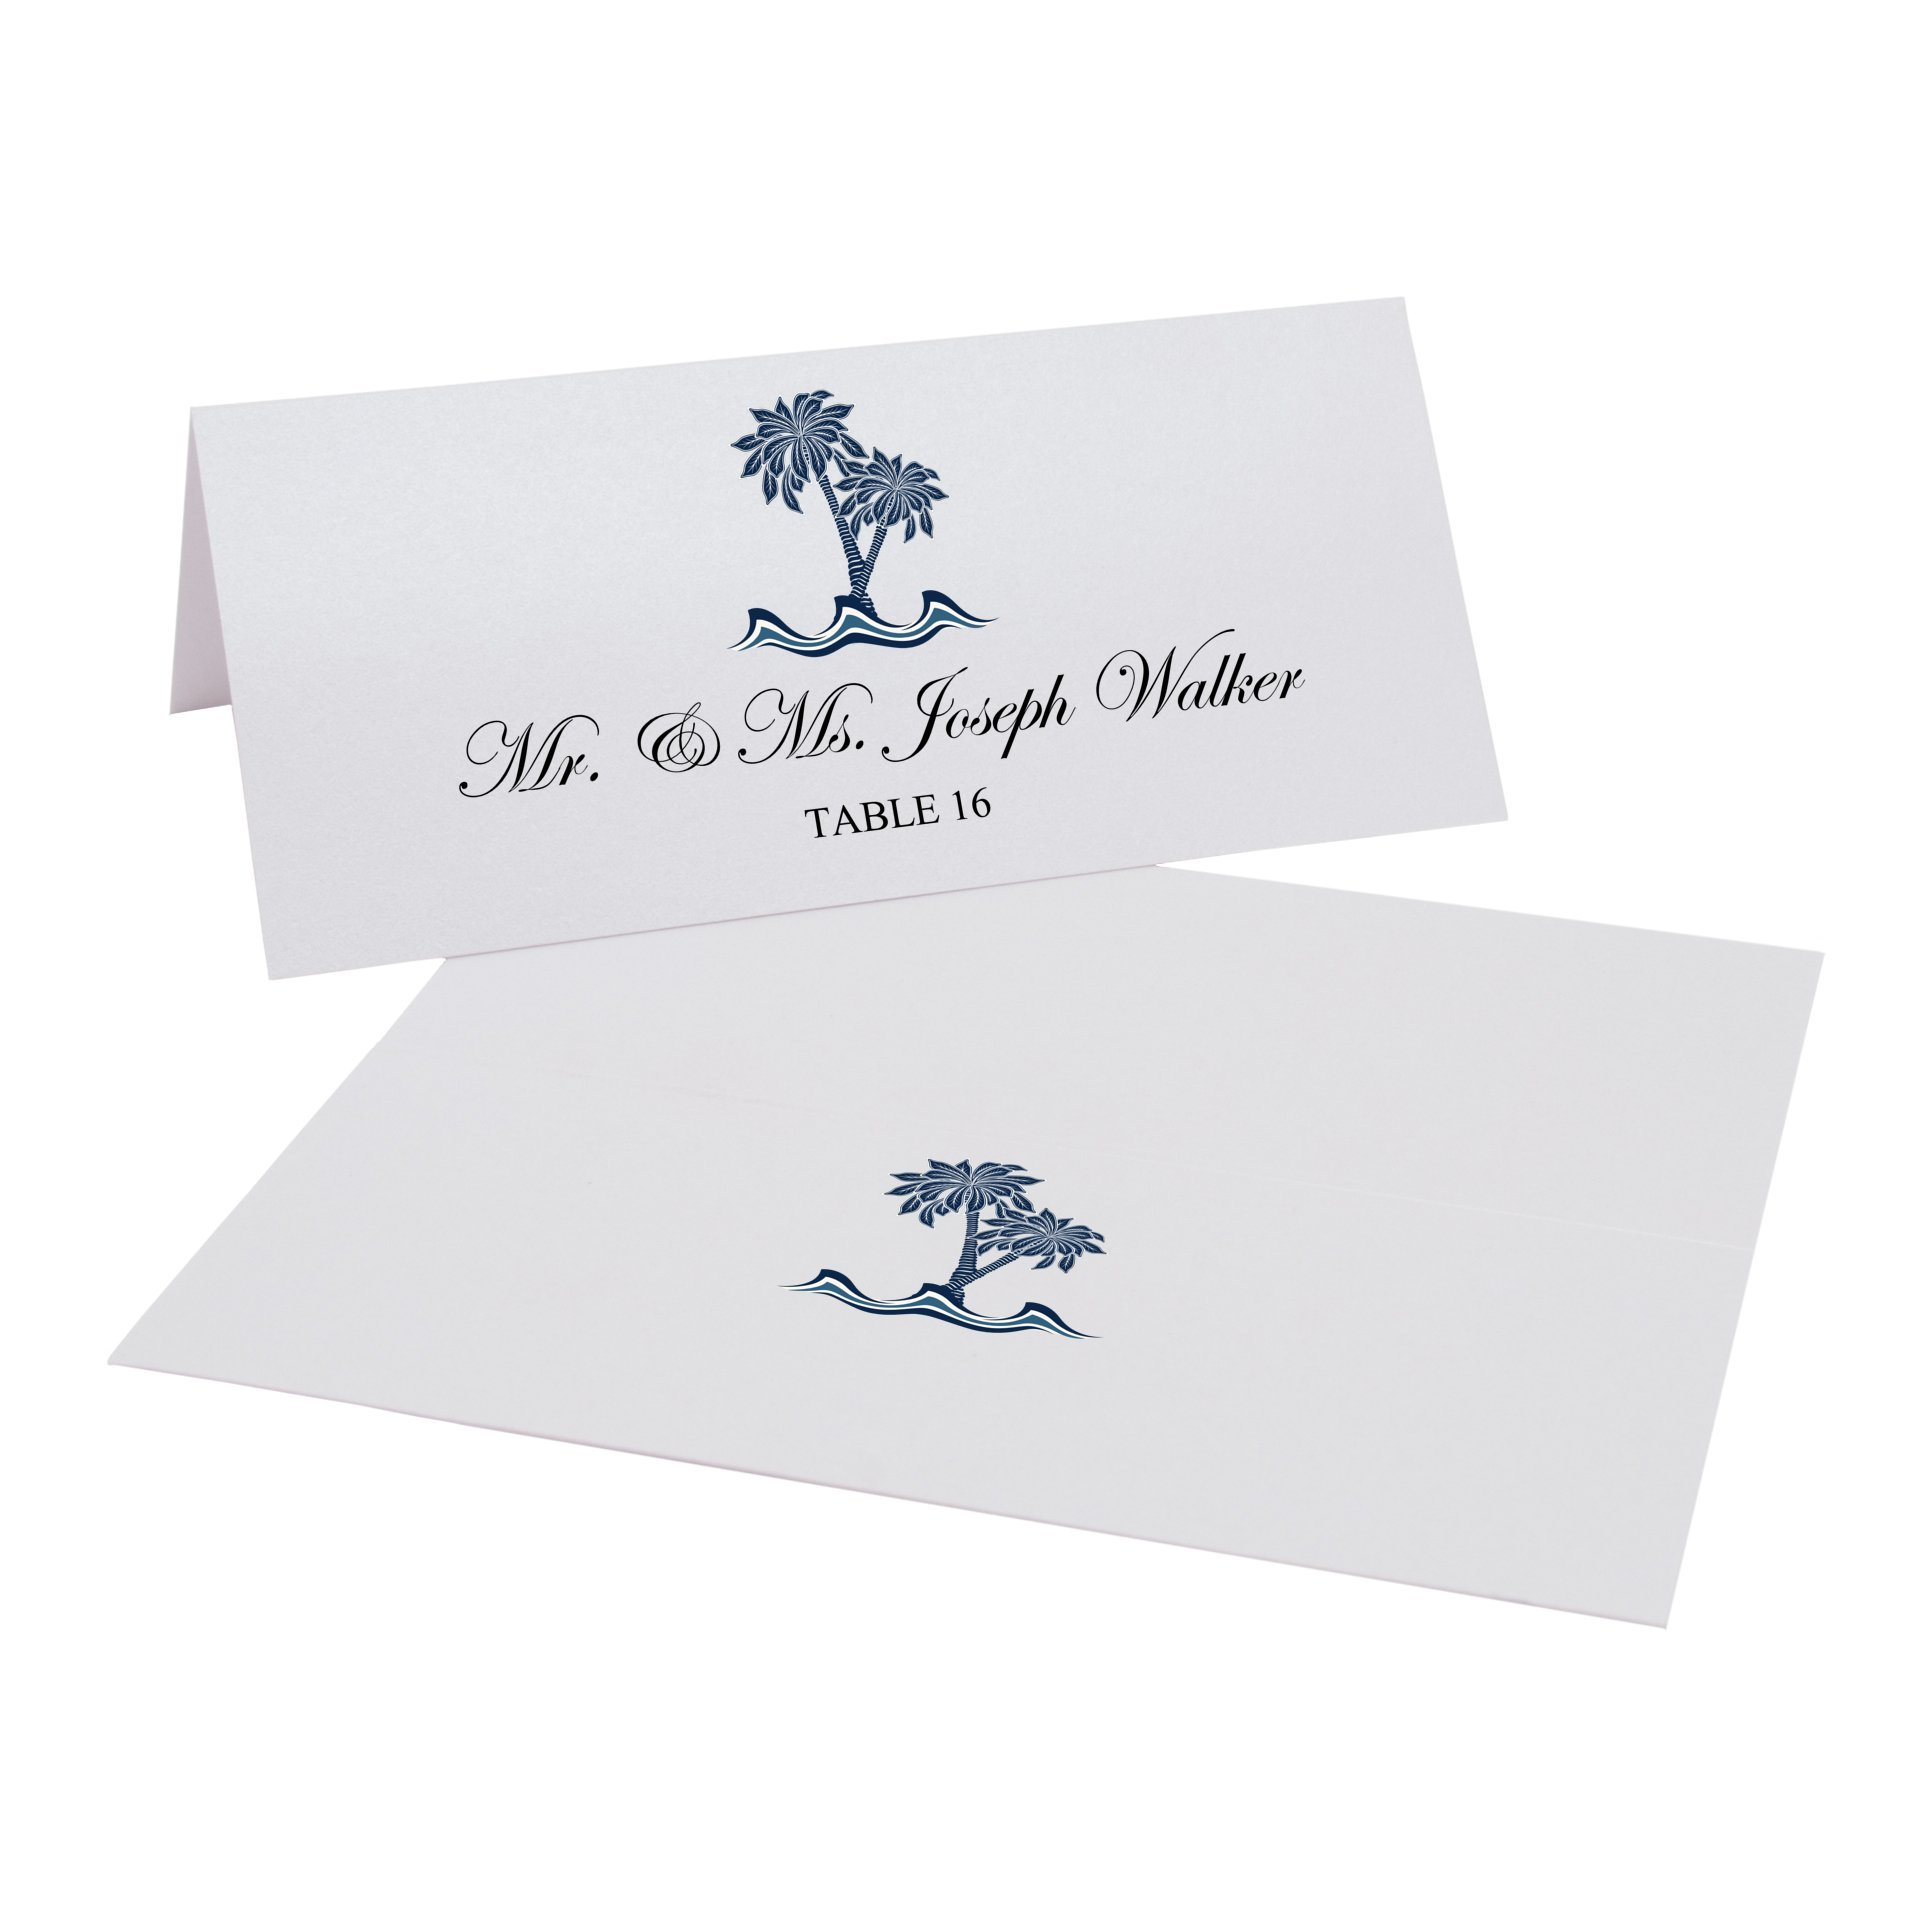 Paisley Palm Tree Easy Print Place Cards, Pearl White, Set of 375 (94 Sheets) by Documents and Designs